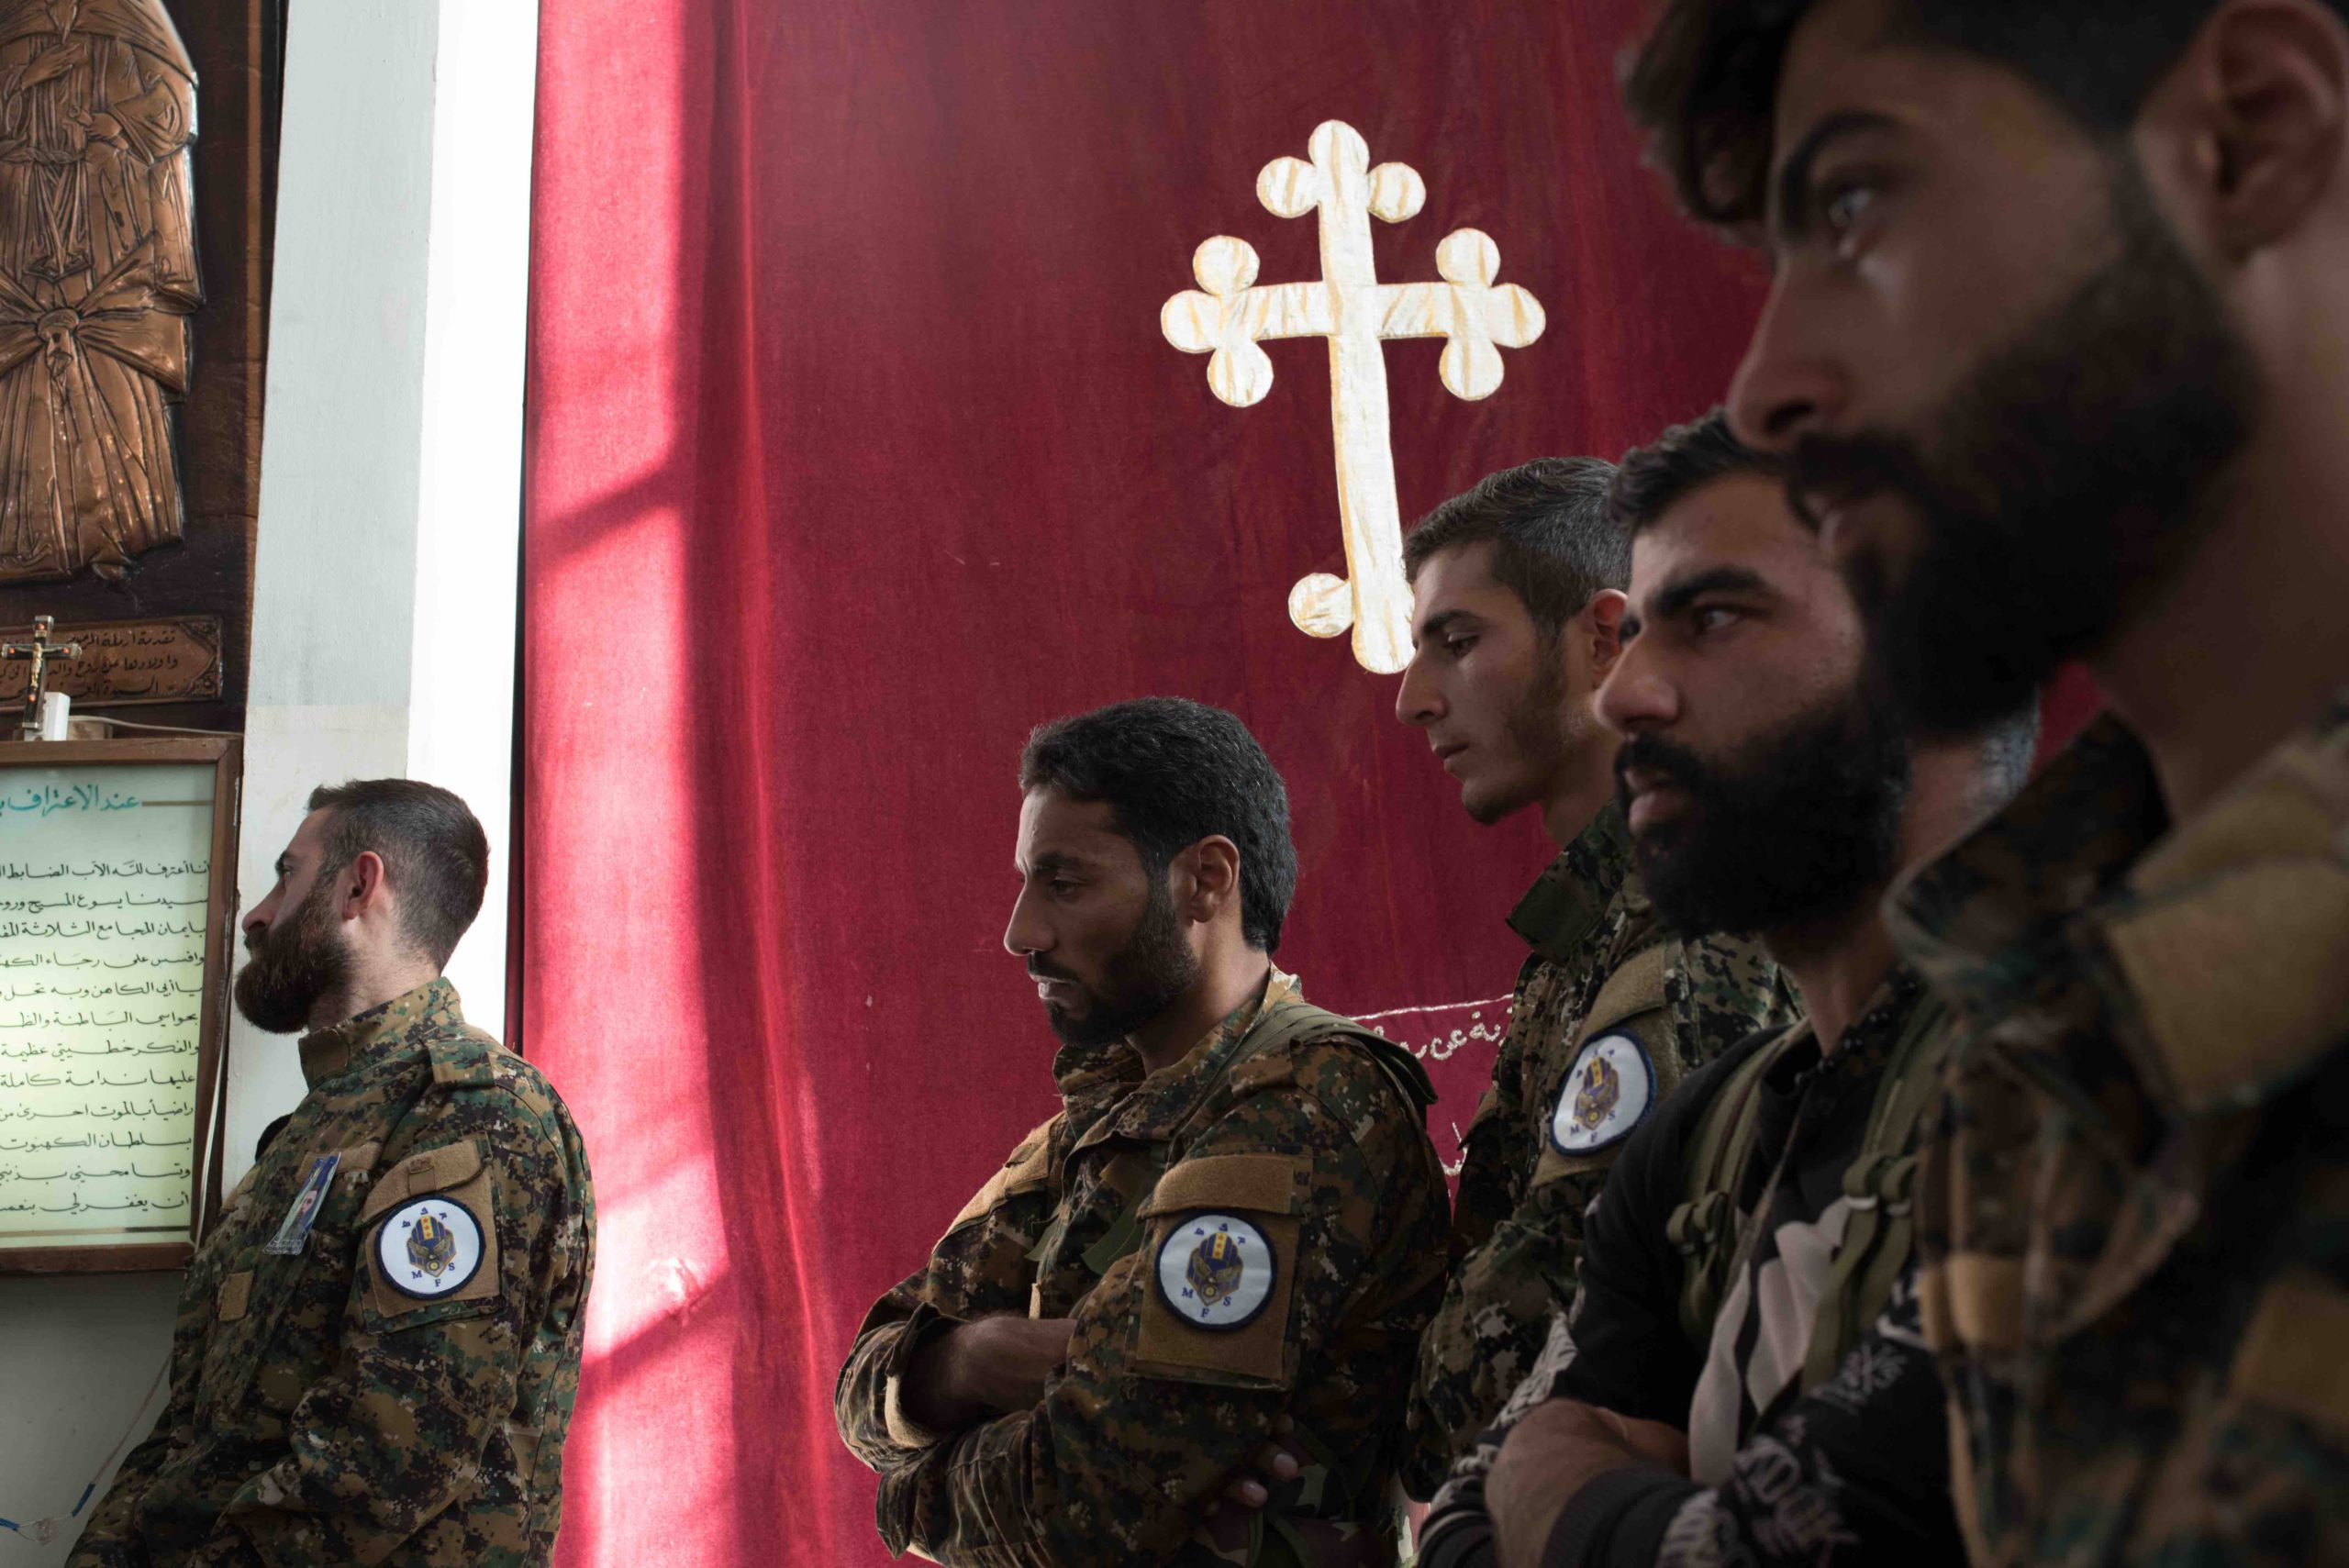 Members from the Syria Military Council (MFS), the main armed Christian militia in Northeastern Syria, during the funeral for one of its members. The MFS militia has more than 2000 members and is allied with the Kurdish People Protection Unit (YPG). Hassakeh, 22.11.19